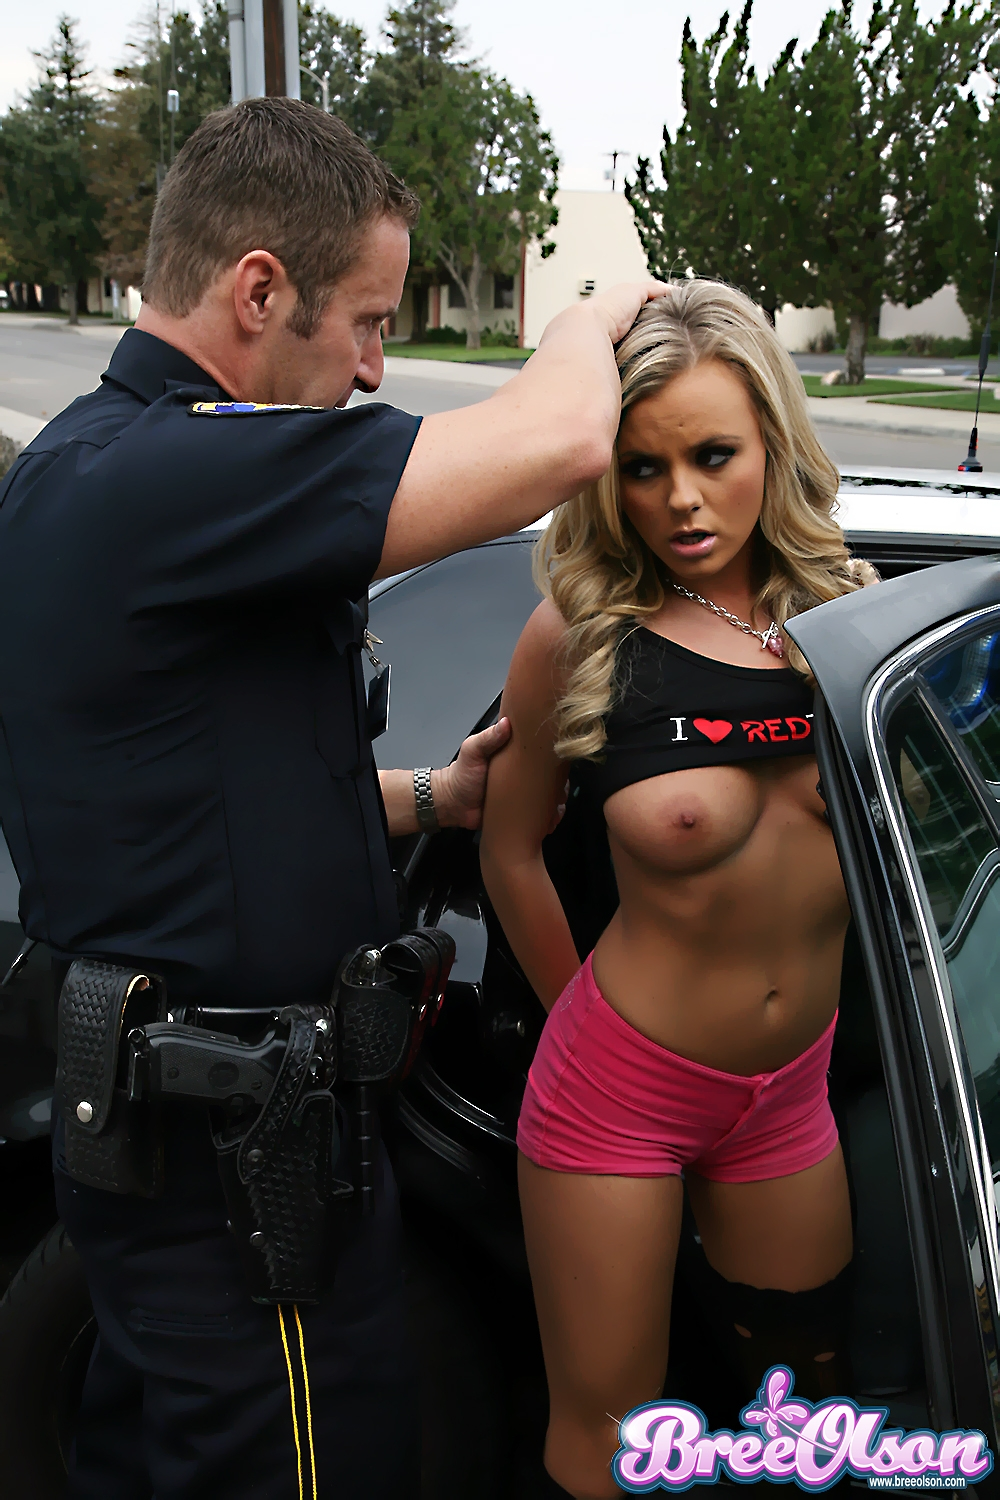 image Bree olson cop and amy reid police fuck we